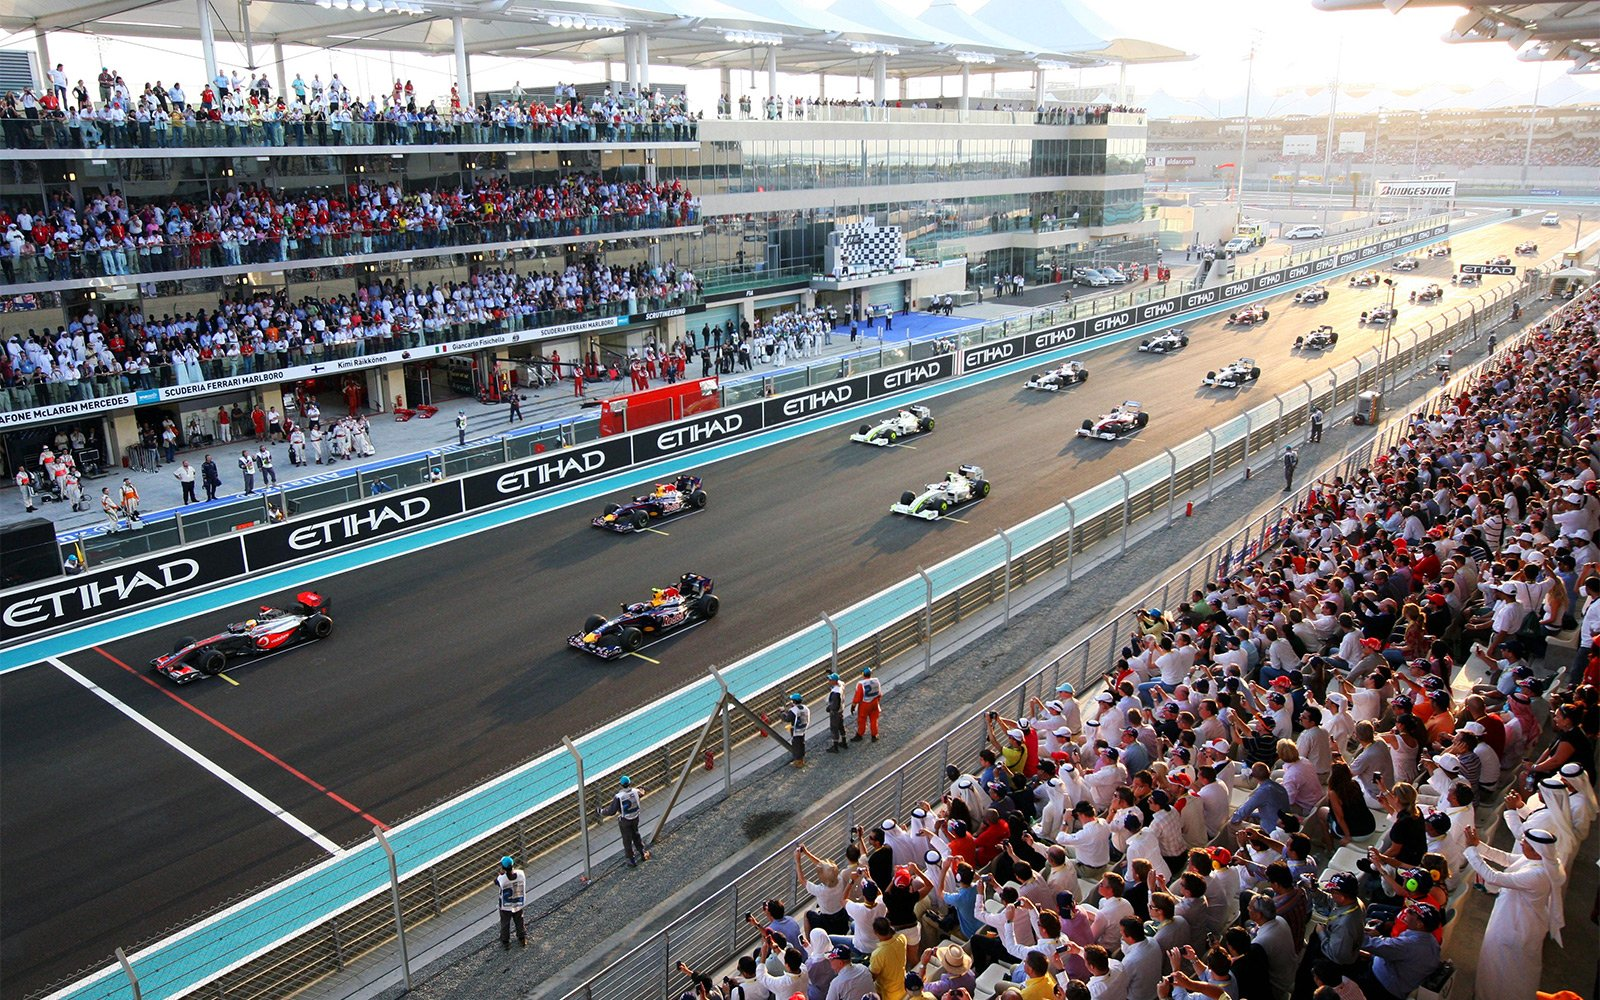 How to go to Formula One Grand Prix in Abu Dhabi